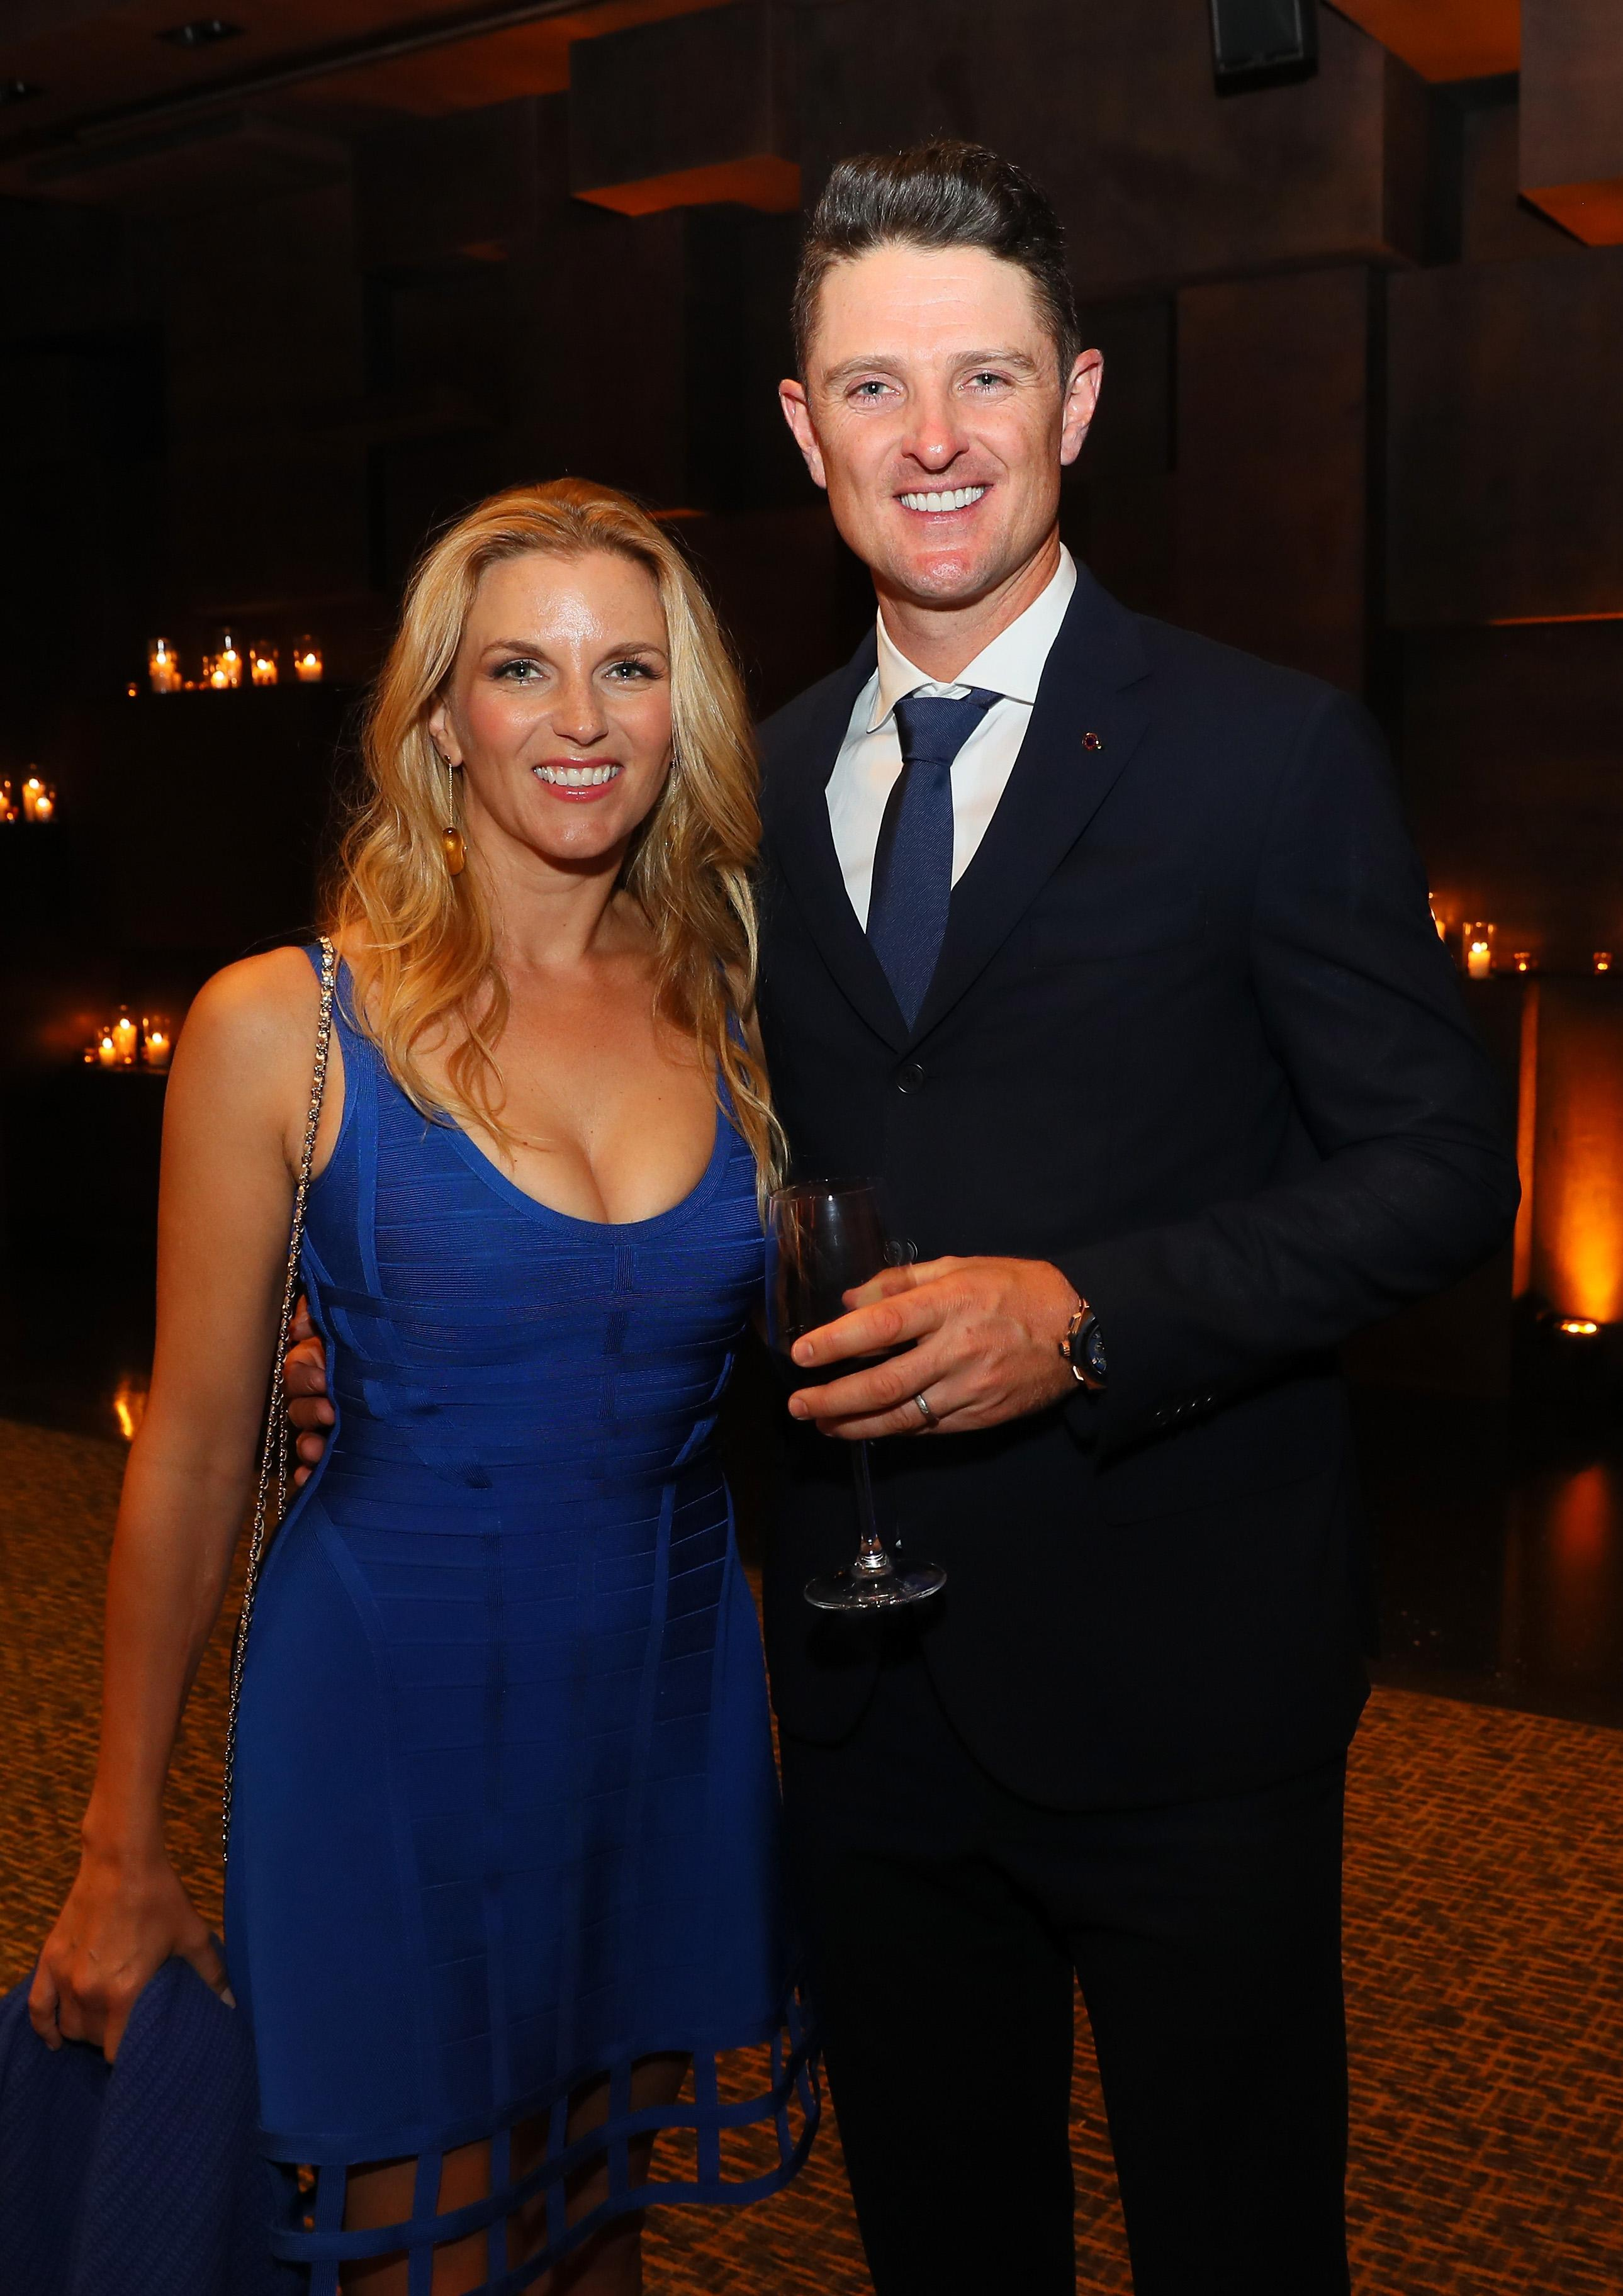 Justin Rose and his wife Rose at the 2016 Ryder Cup